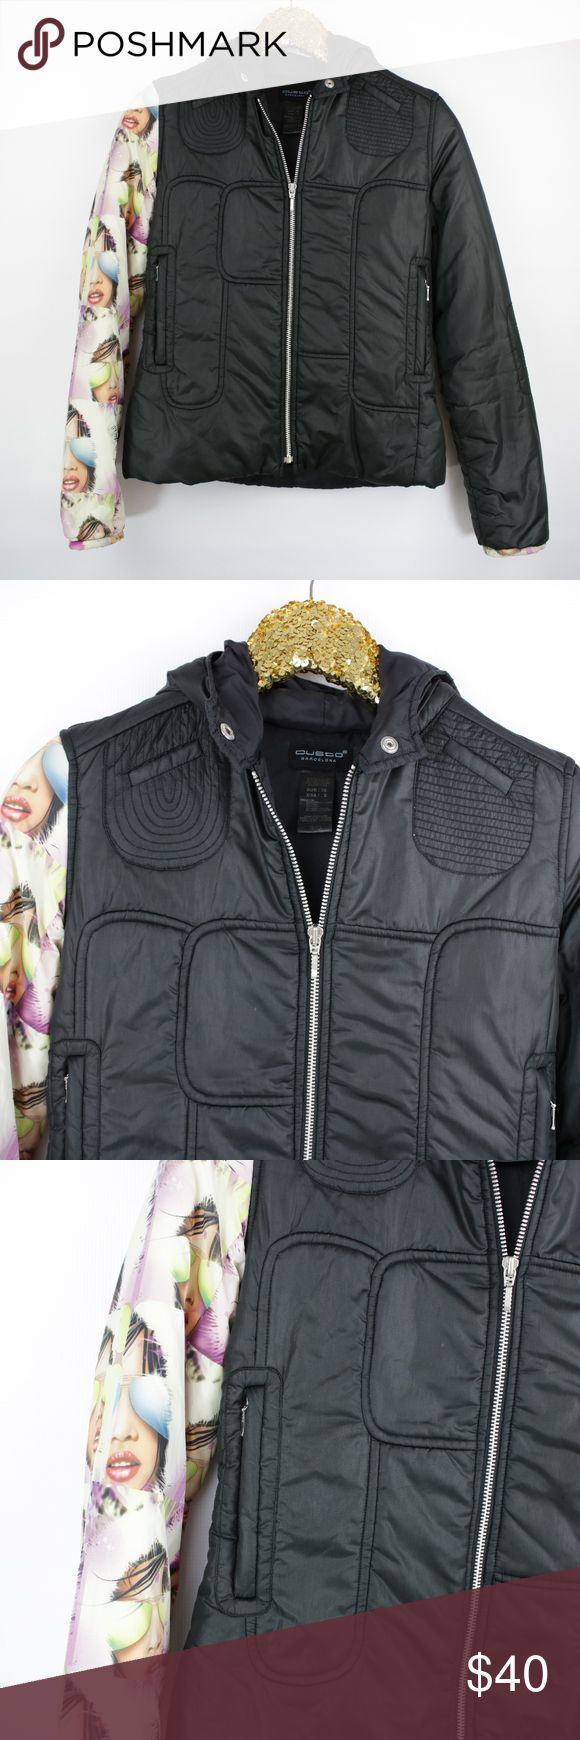 Custo Barcelona Black Hoodie Casual Puffer Jacket - Size: 2 - Excellent Condition.  - No trades, thank you! - Pet and Smoke-Free Home  - Same or Next day Shipping  Measurements:  Bust: 38 inches Length: 23 inches Sleeve Length: 25 inches Custo Barcelona Jackets & Coats Puffers